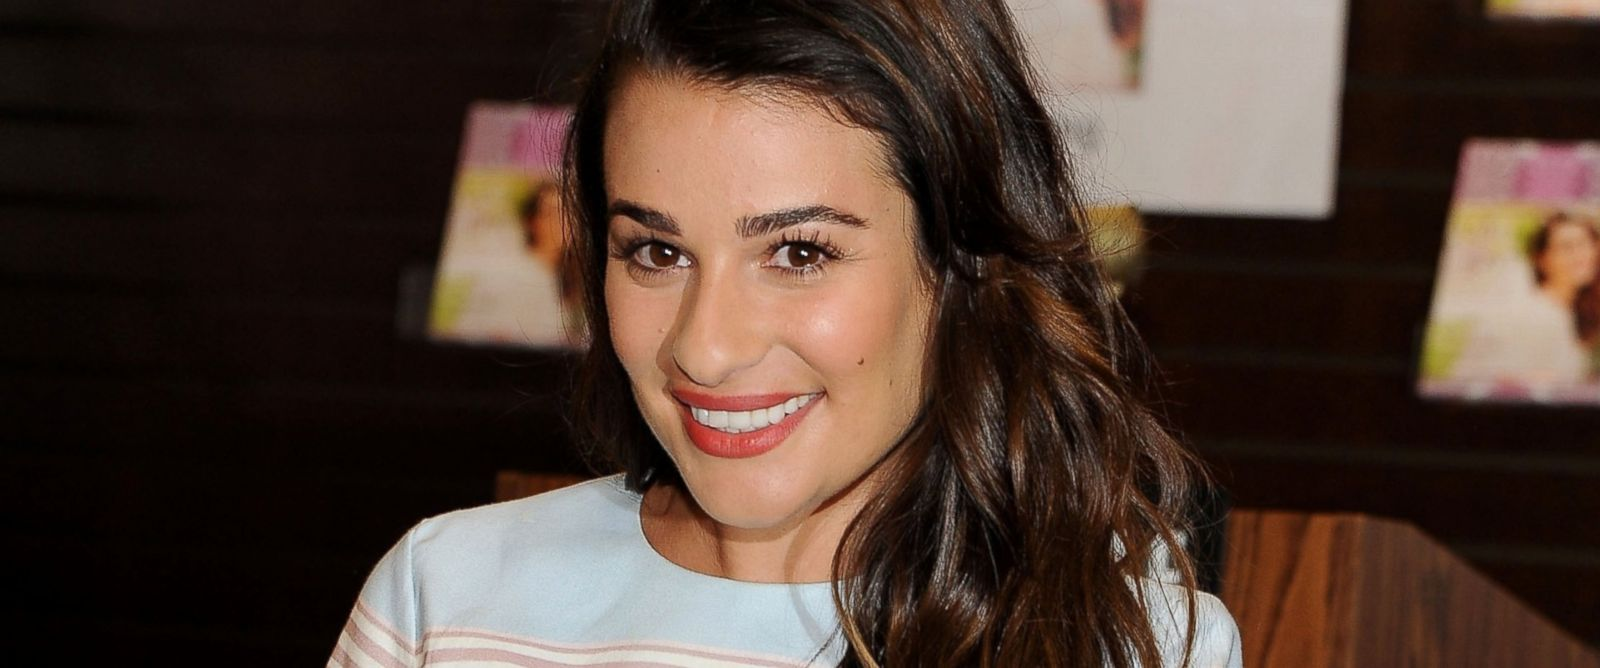 lea michele – battlefieldlea michele love is alive перевод, lea michele love is alive скачать, lea michele instagram, lea michele louder, lea michele – battlefield, lea michele anything is possible перевод, lea michele on my way, lea michele tattoos, lea michele cannonball перевод, lea michele wiki, lea michele if you say so lyrics, lea michele vk, lea michele – anything's possible перевод, lea michele – anything's possible, lea michele love is alive слушать, lea michele – thousand needles, lea michele empty handed перевод, lea michele you're mine перевод, lea michele скачать, lea michele on my way перевод